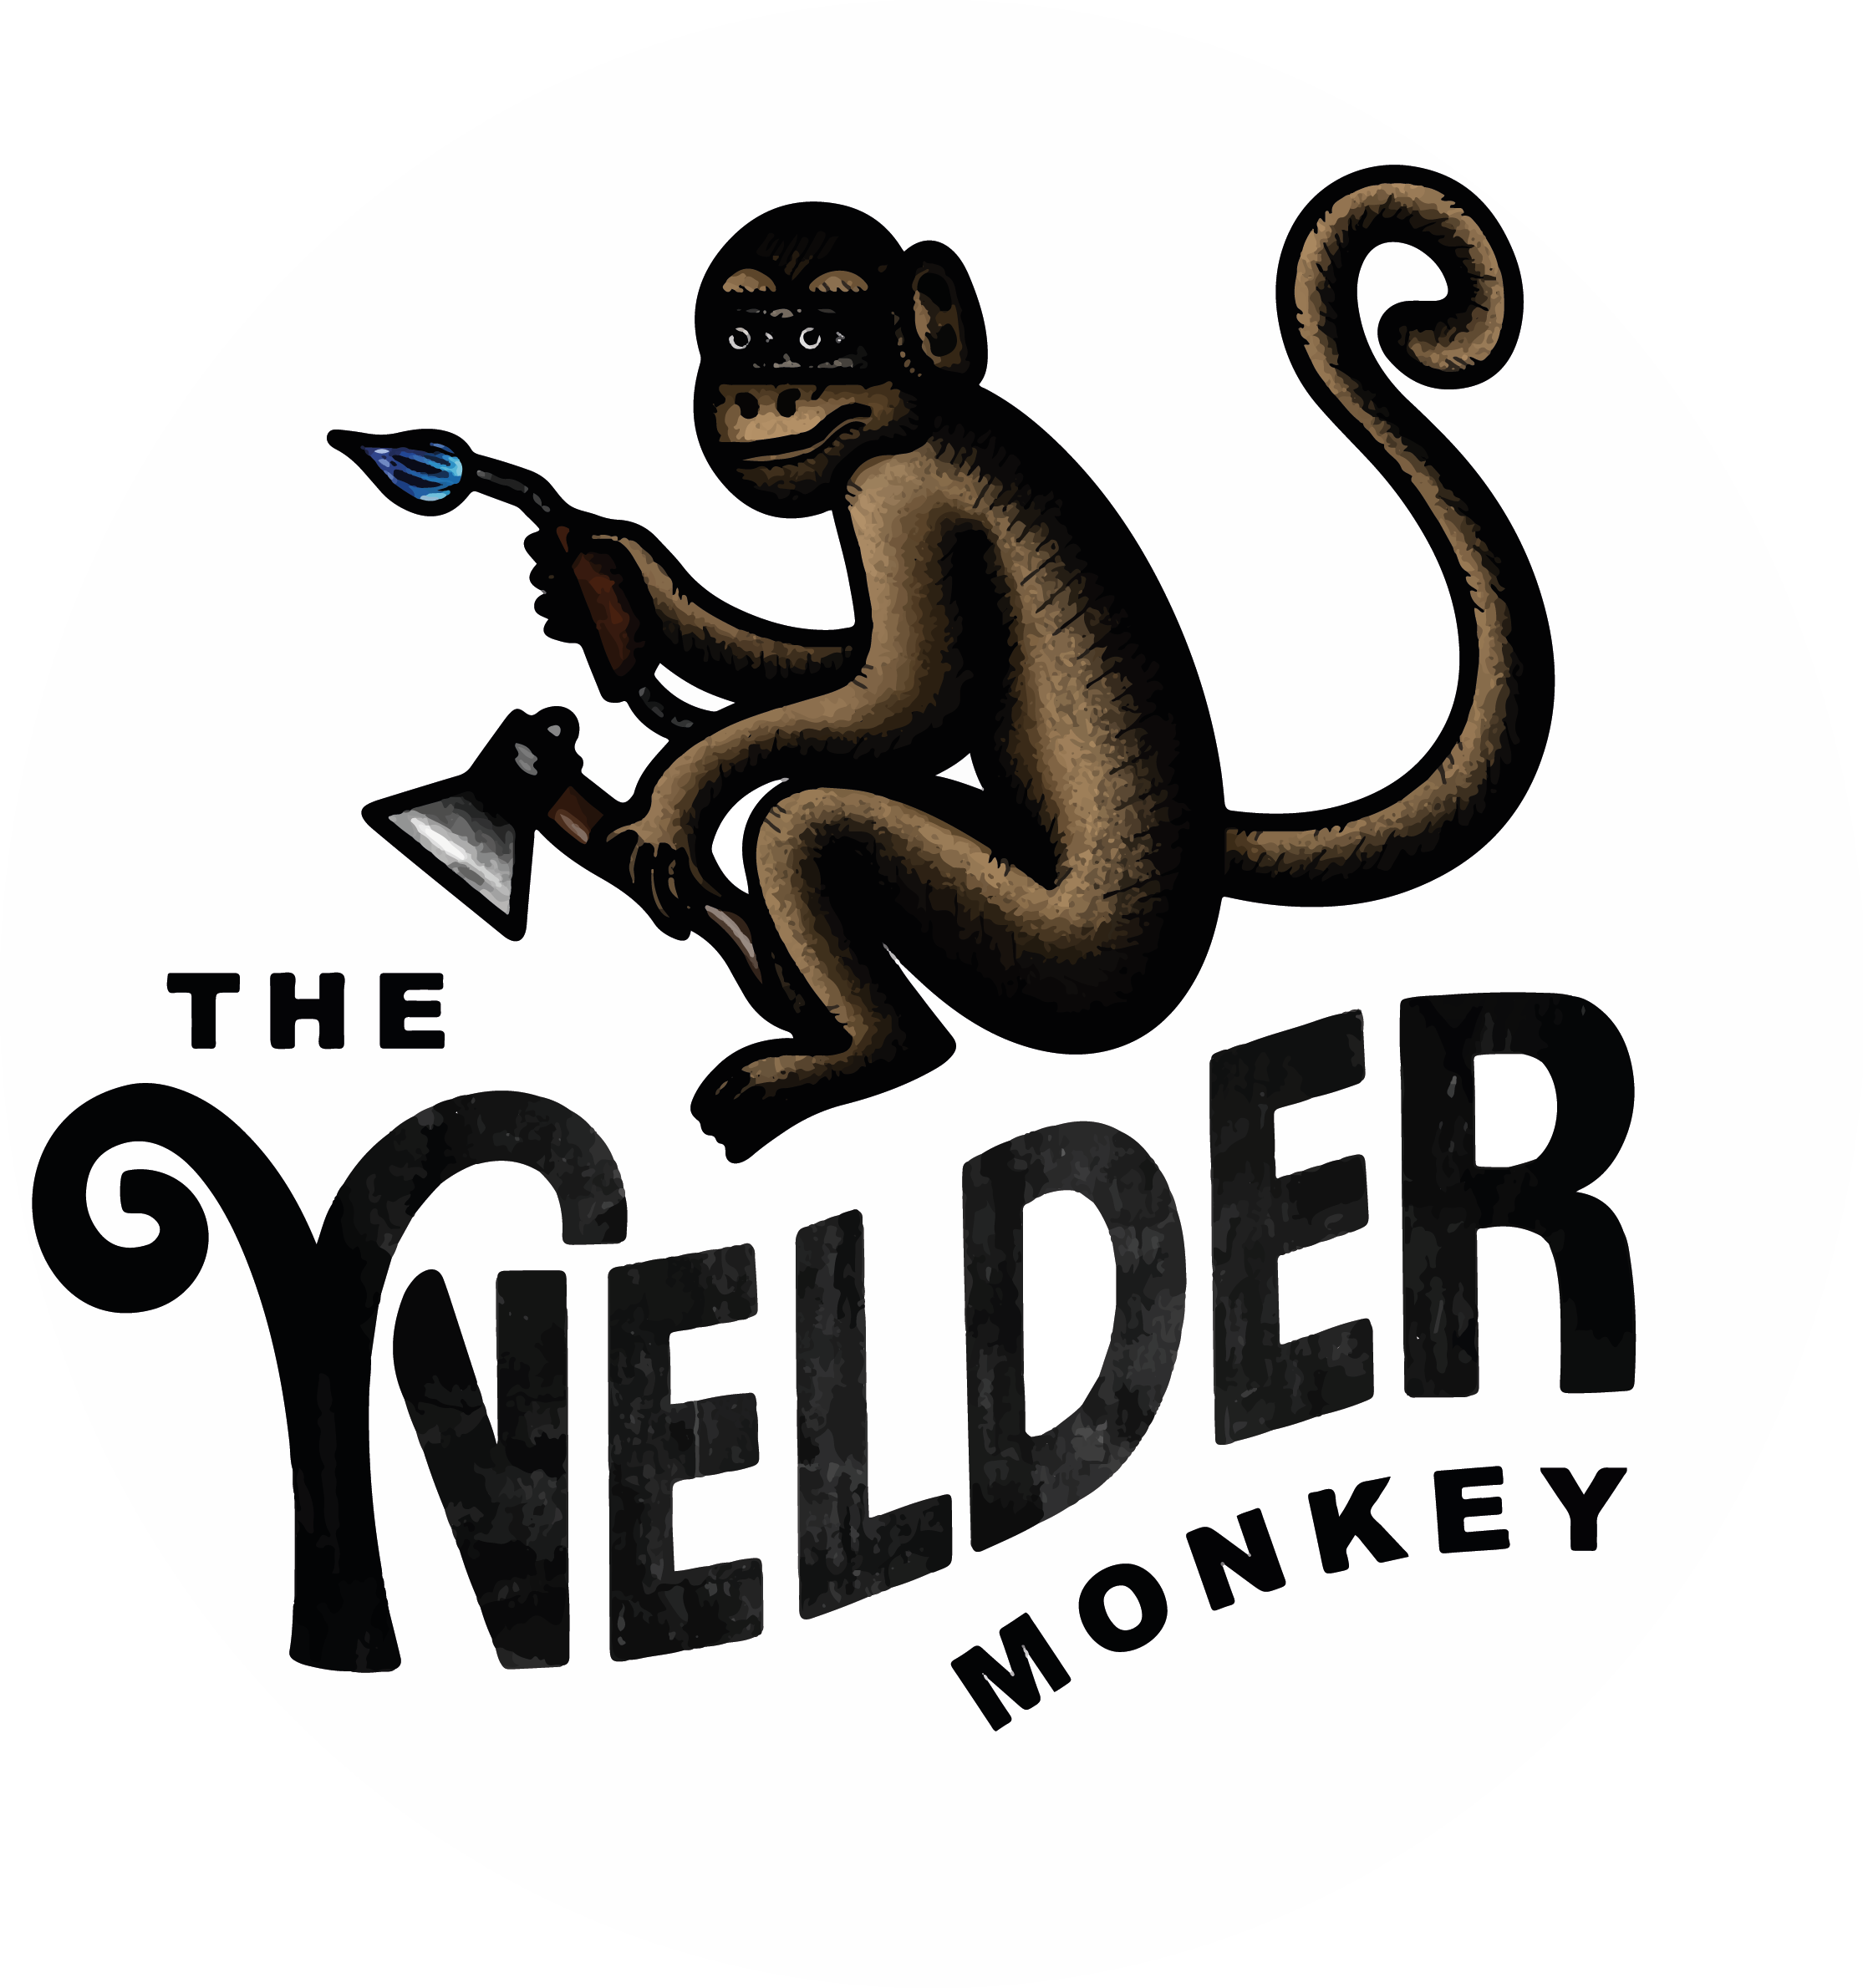 The Welder Monkey